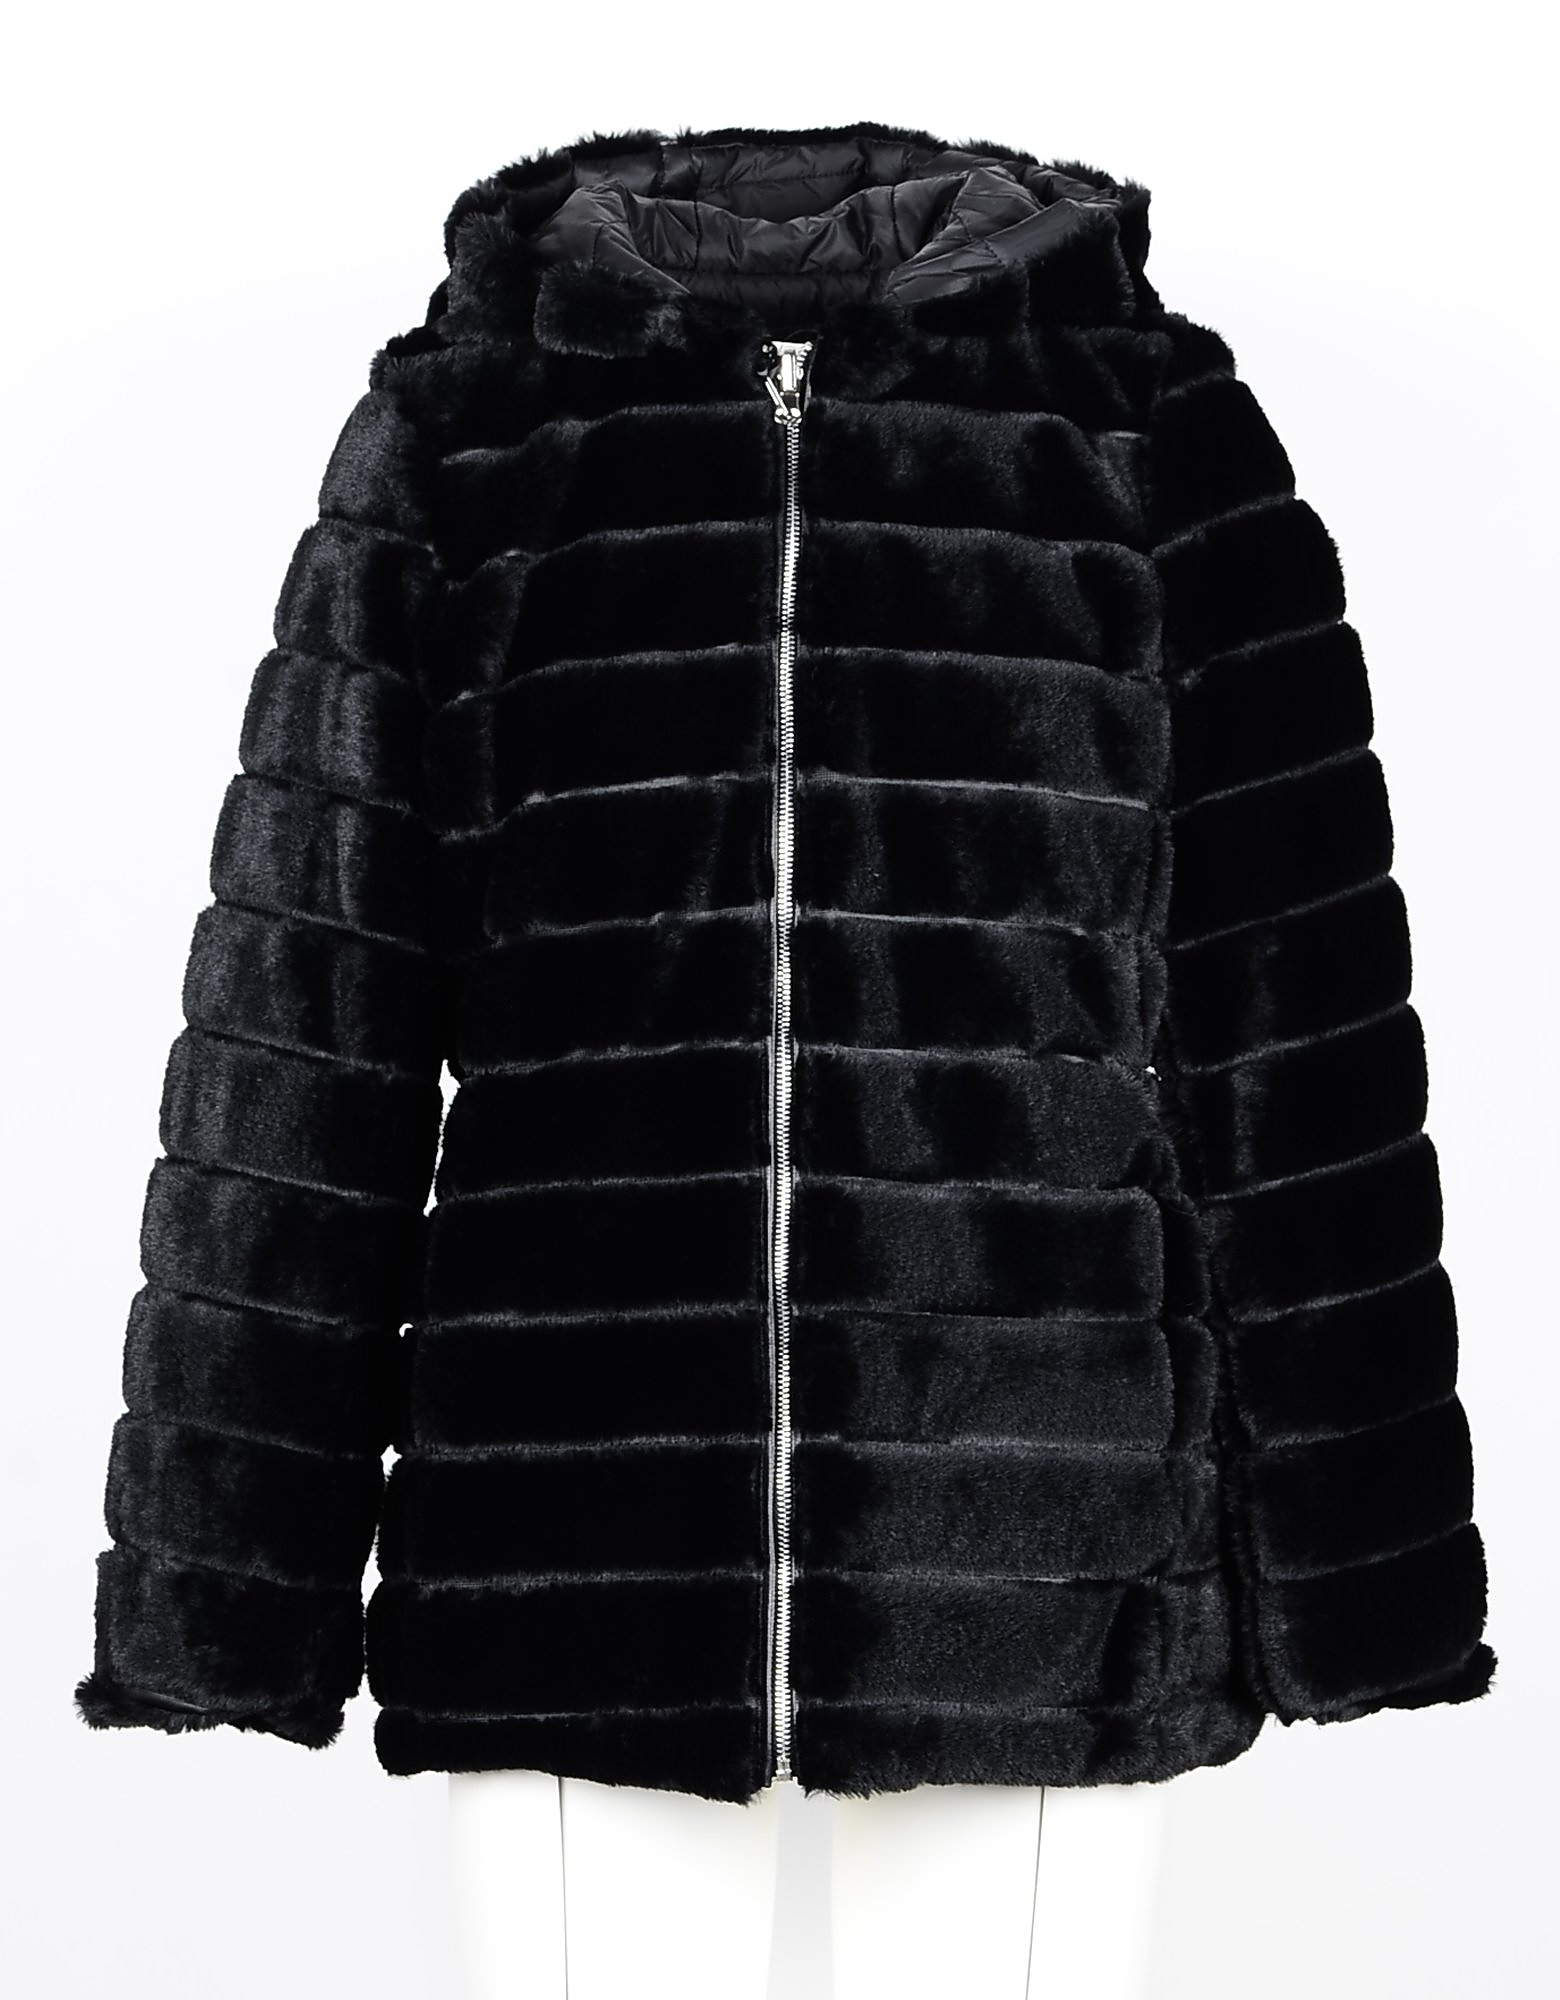 Annarita N Designer Coats & Jackets, Black Eco-Fur Women's Quilted Jacket